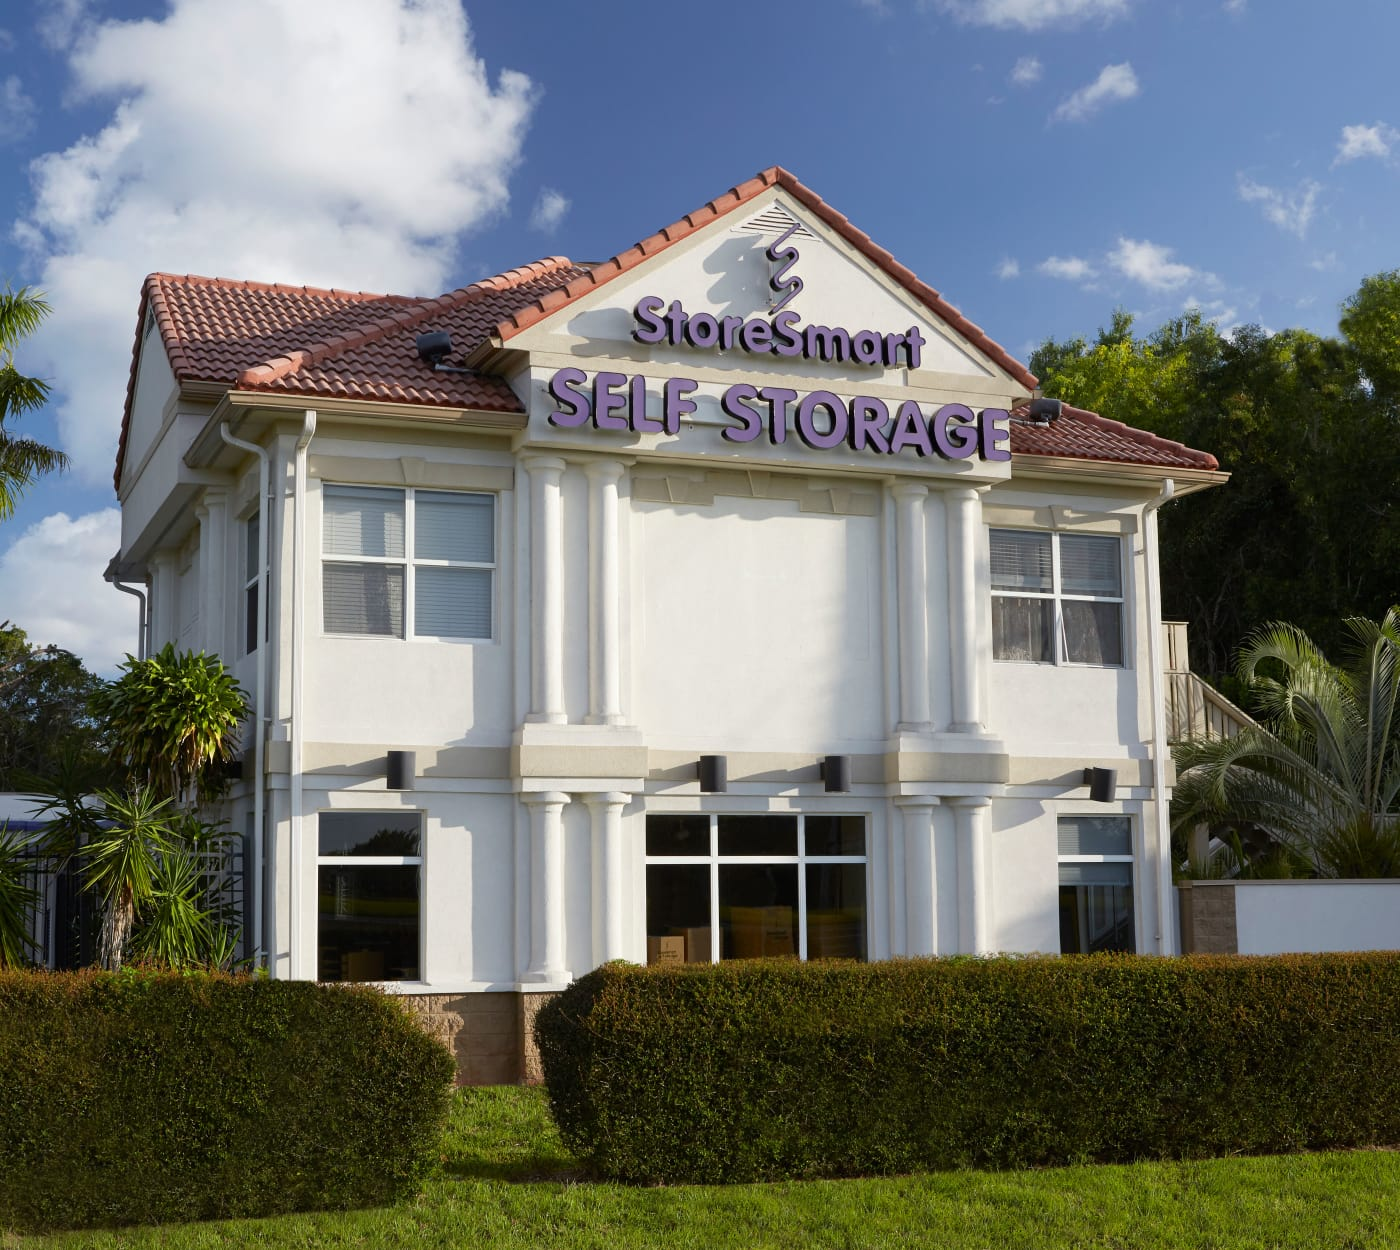 Entrance to StoreSmart Self-Storage in Naples, Florida